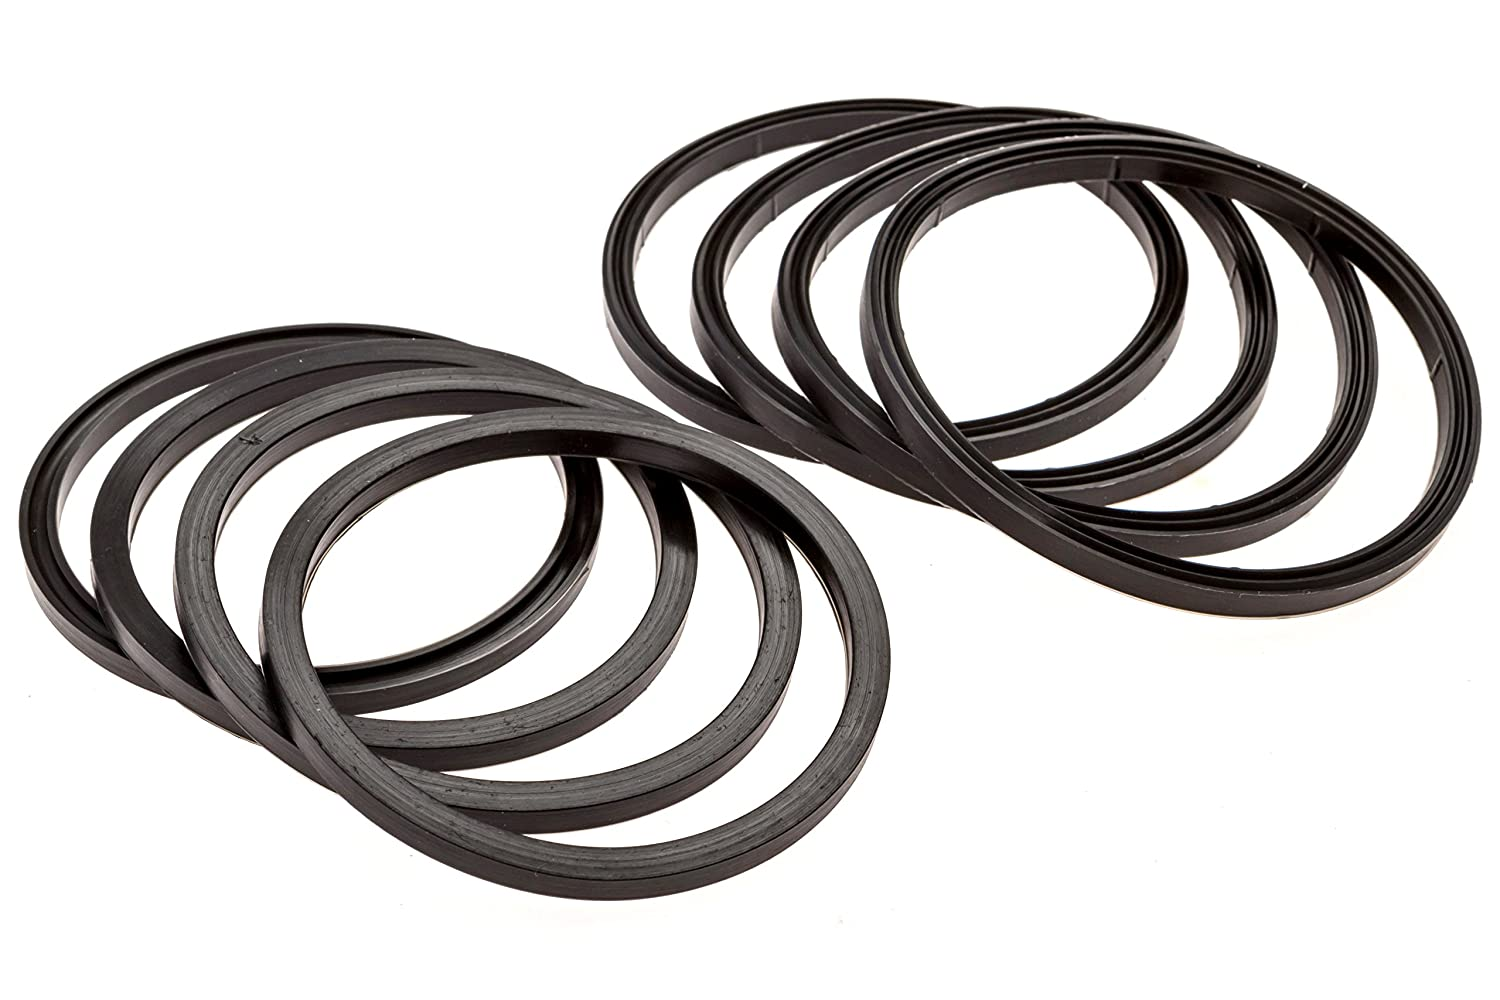 Rubber Seal Fittings Compatible with Camco RhinoFLEX//Revolution//Easy-Slip Equivalent to 39834 Mission Automotive 8-Pack of RV Sewer Hose Replacement Gaskets